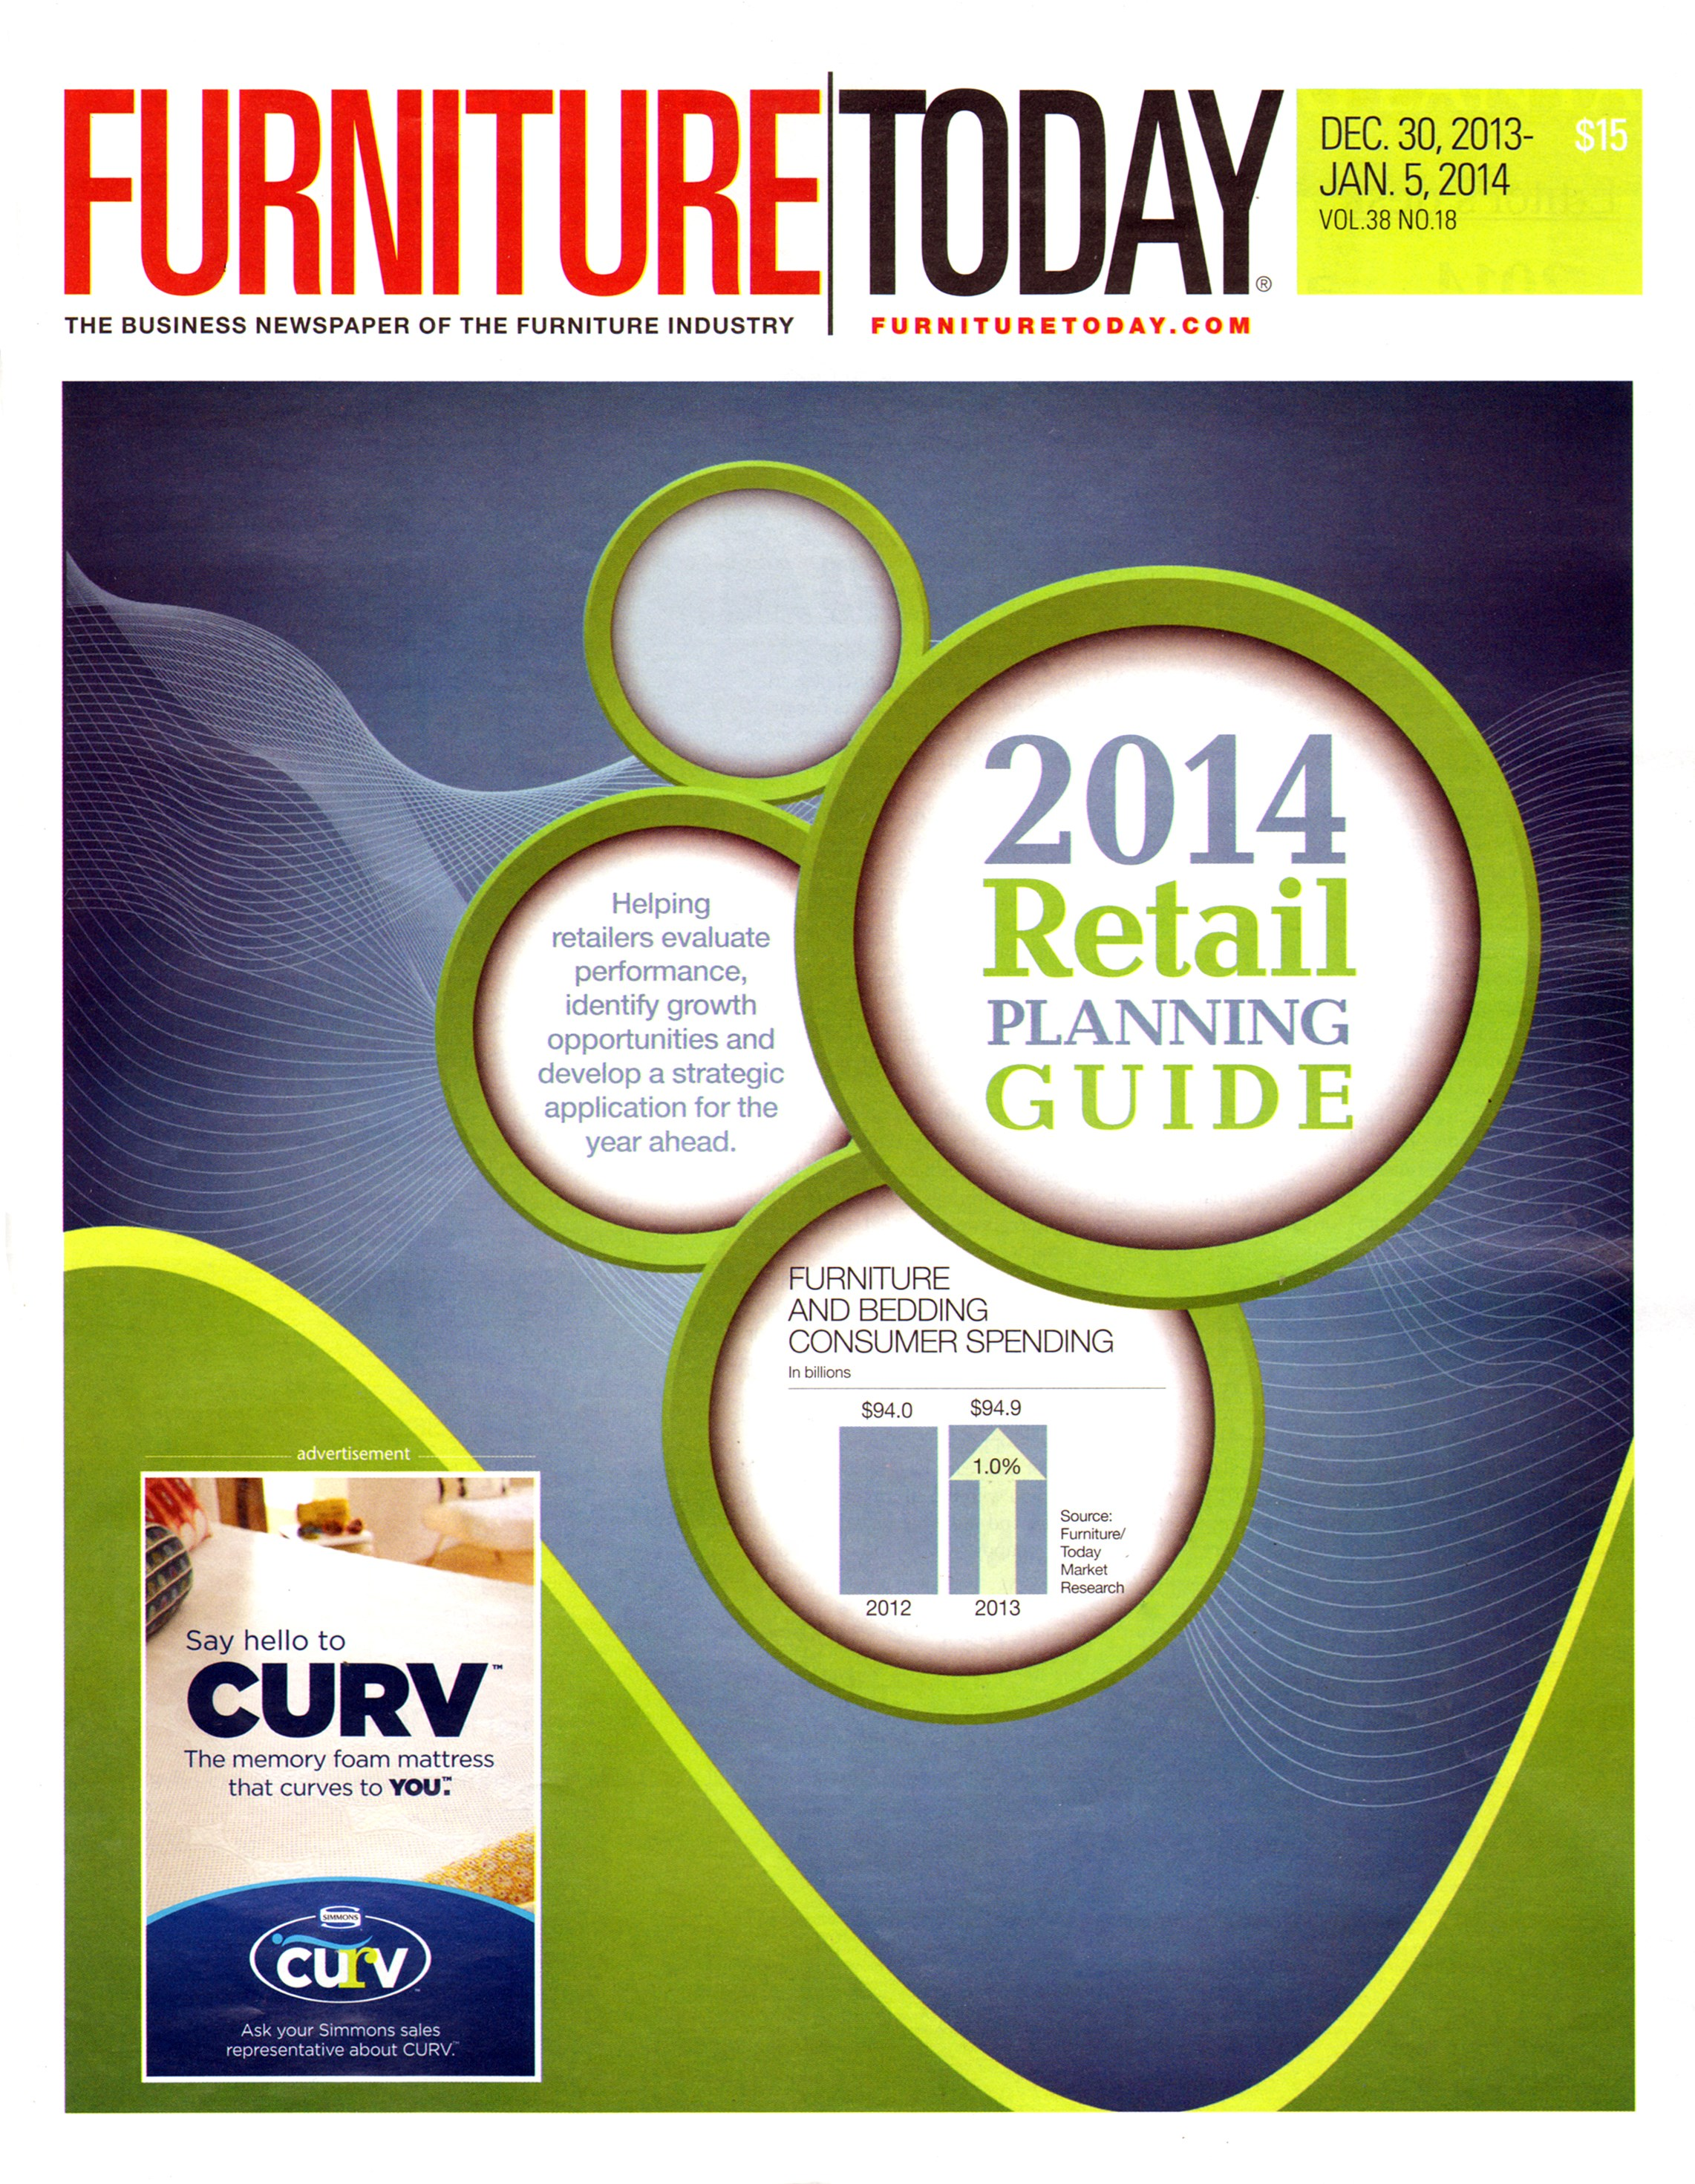 Best Price for Furniture/Today Magazine Subscription